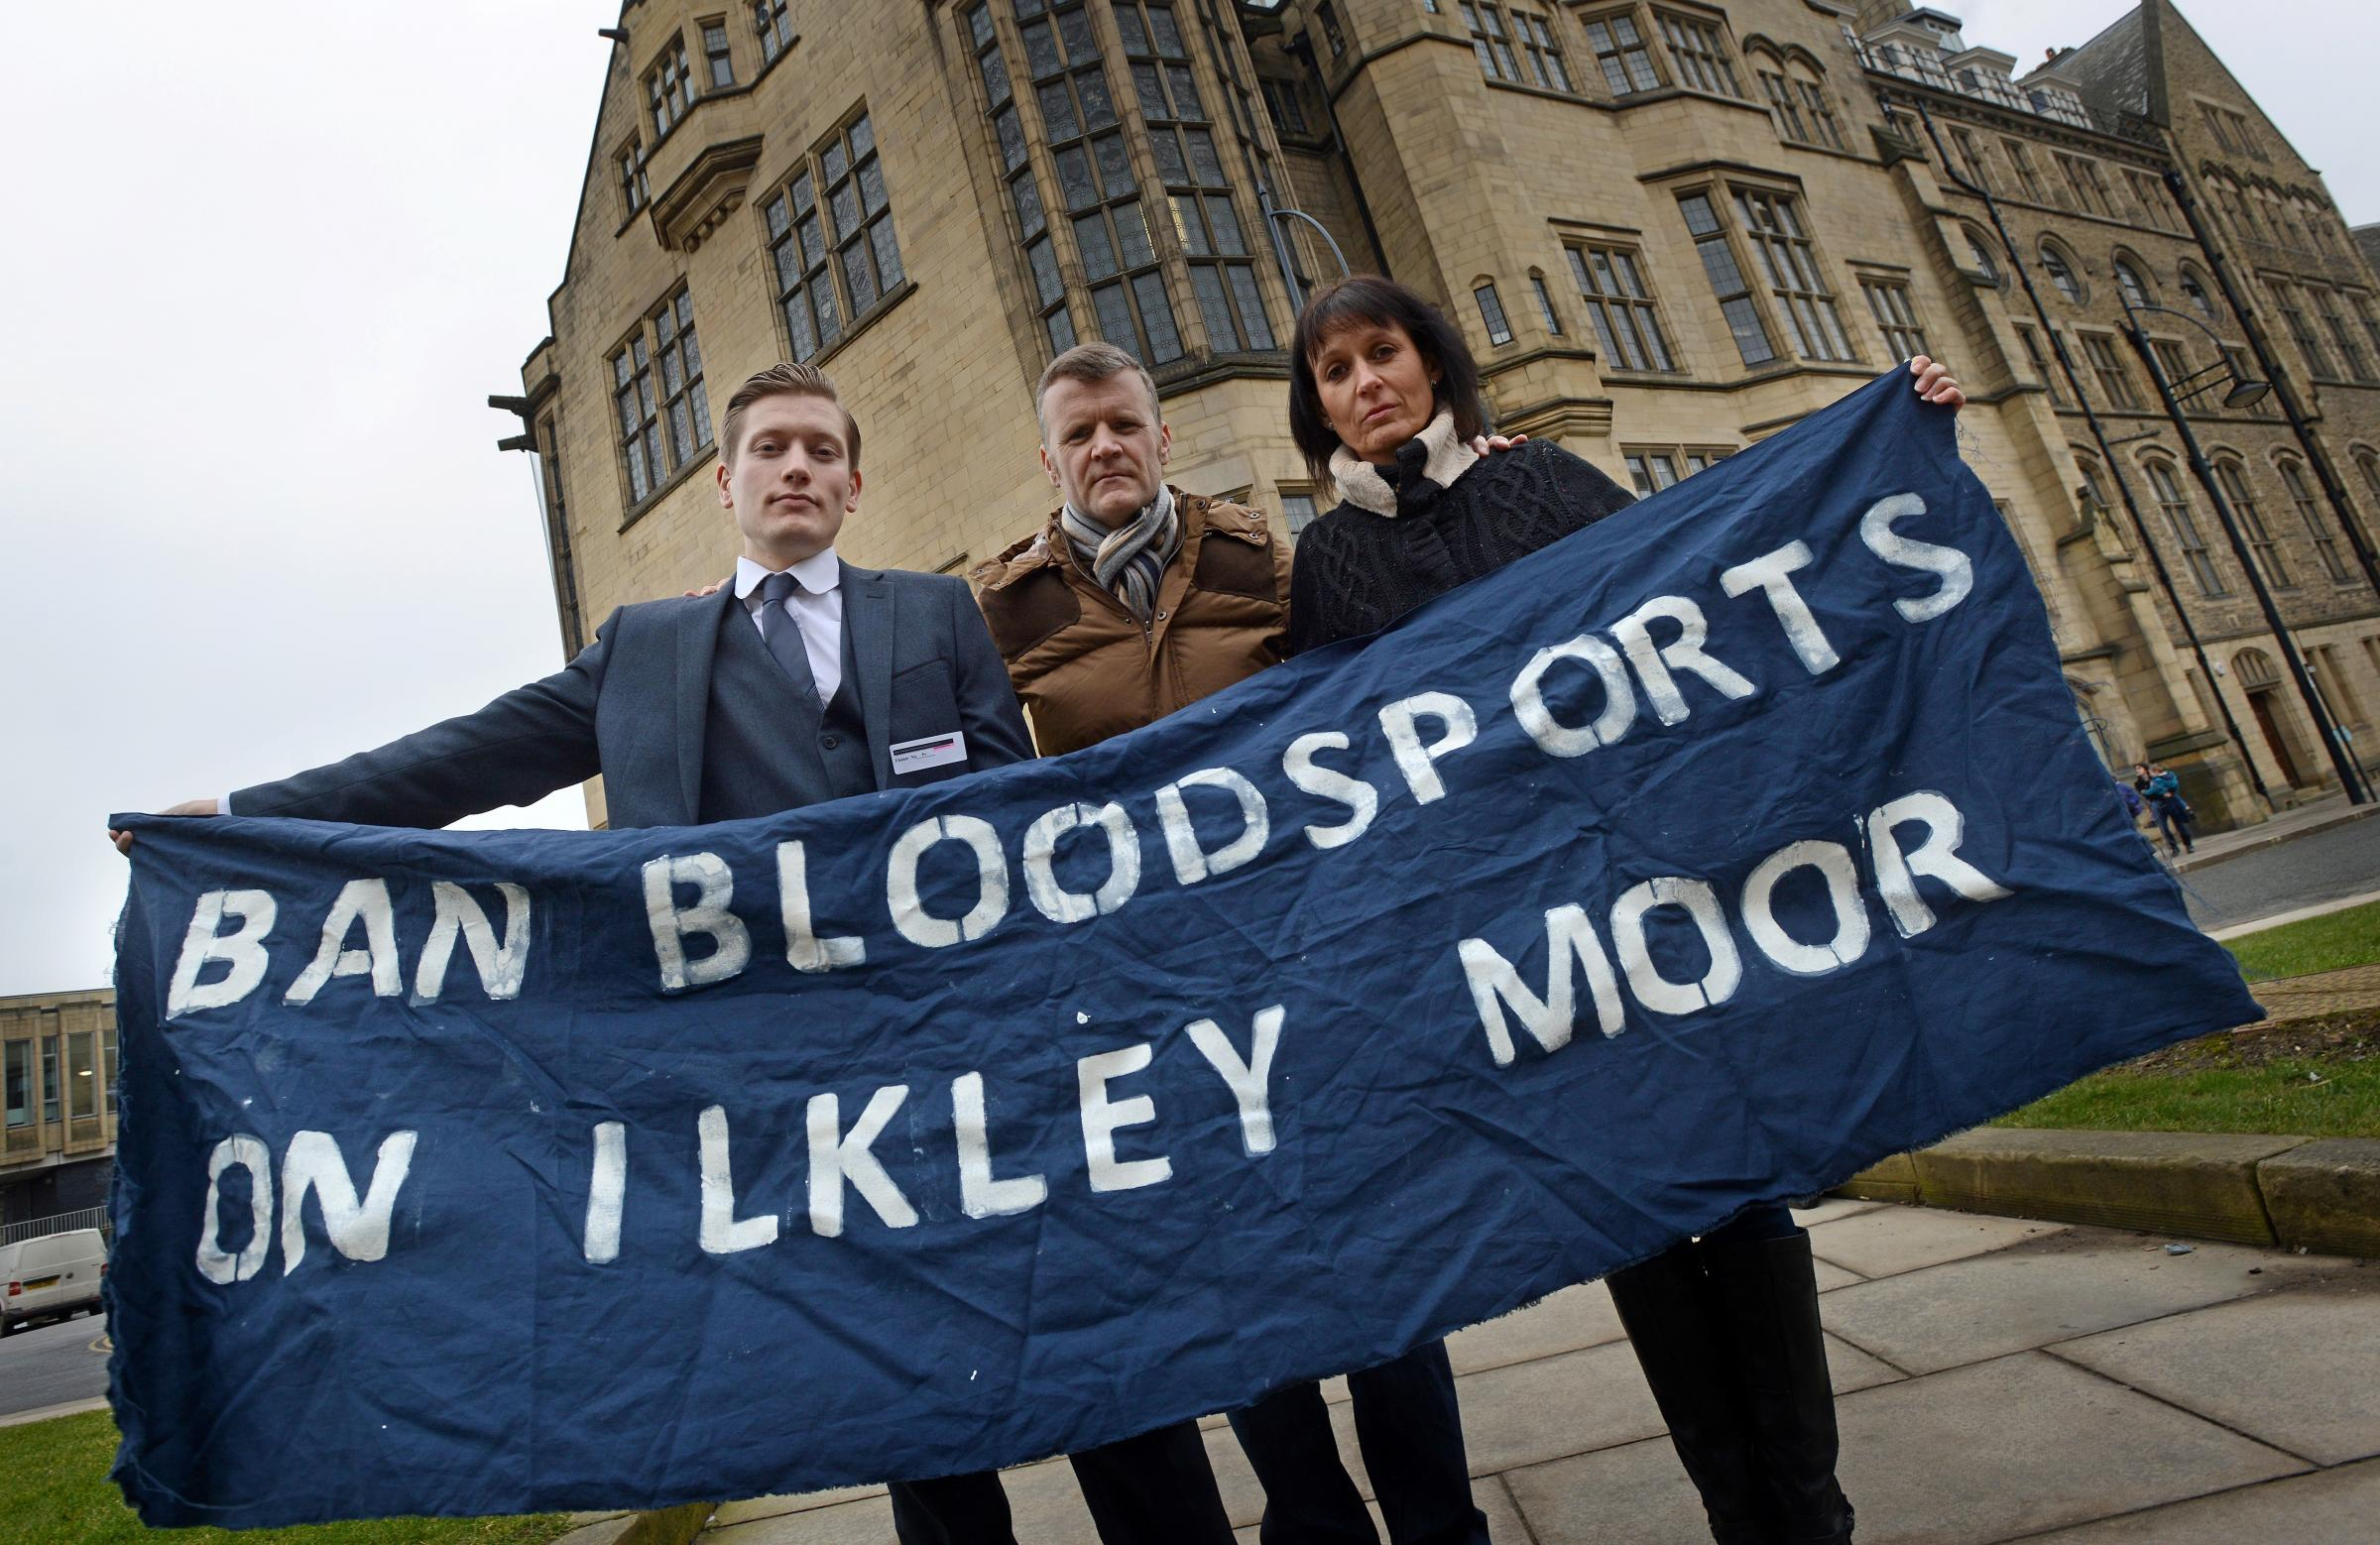 Ban Bloodsports on Ilkley Moor